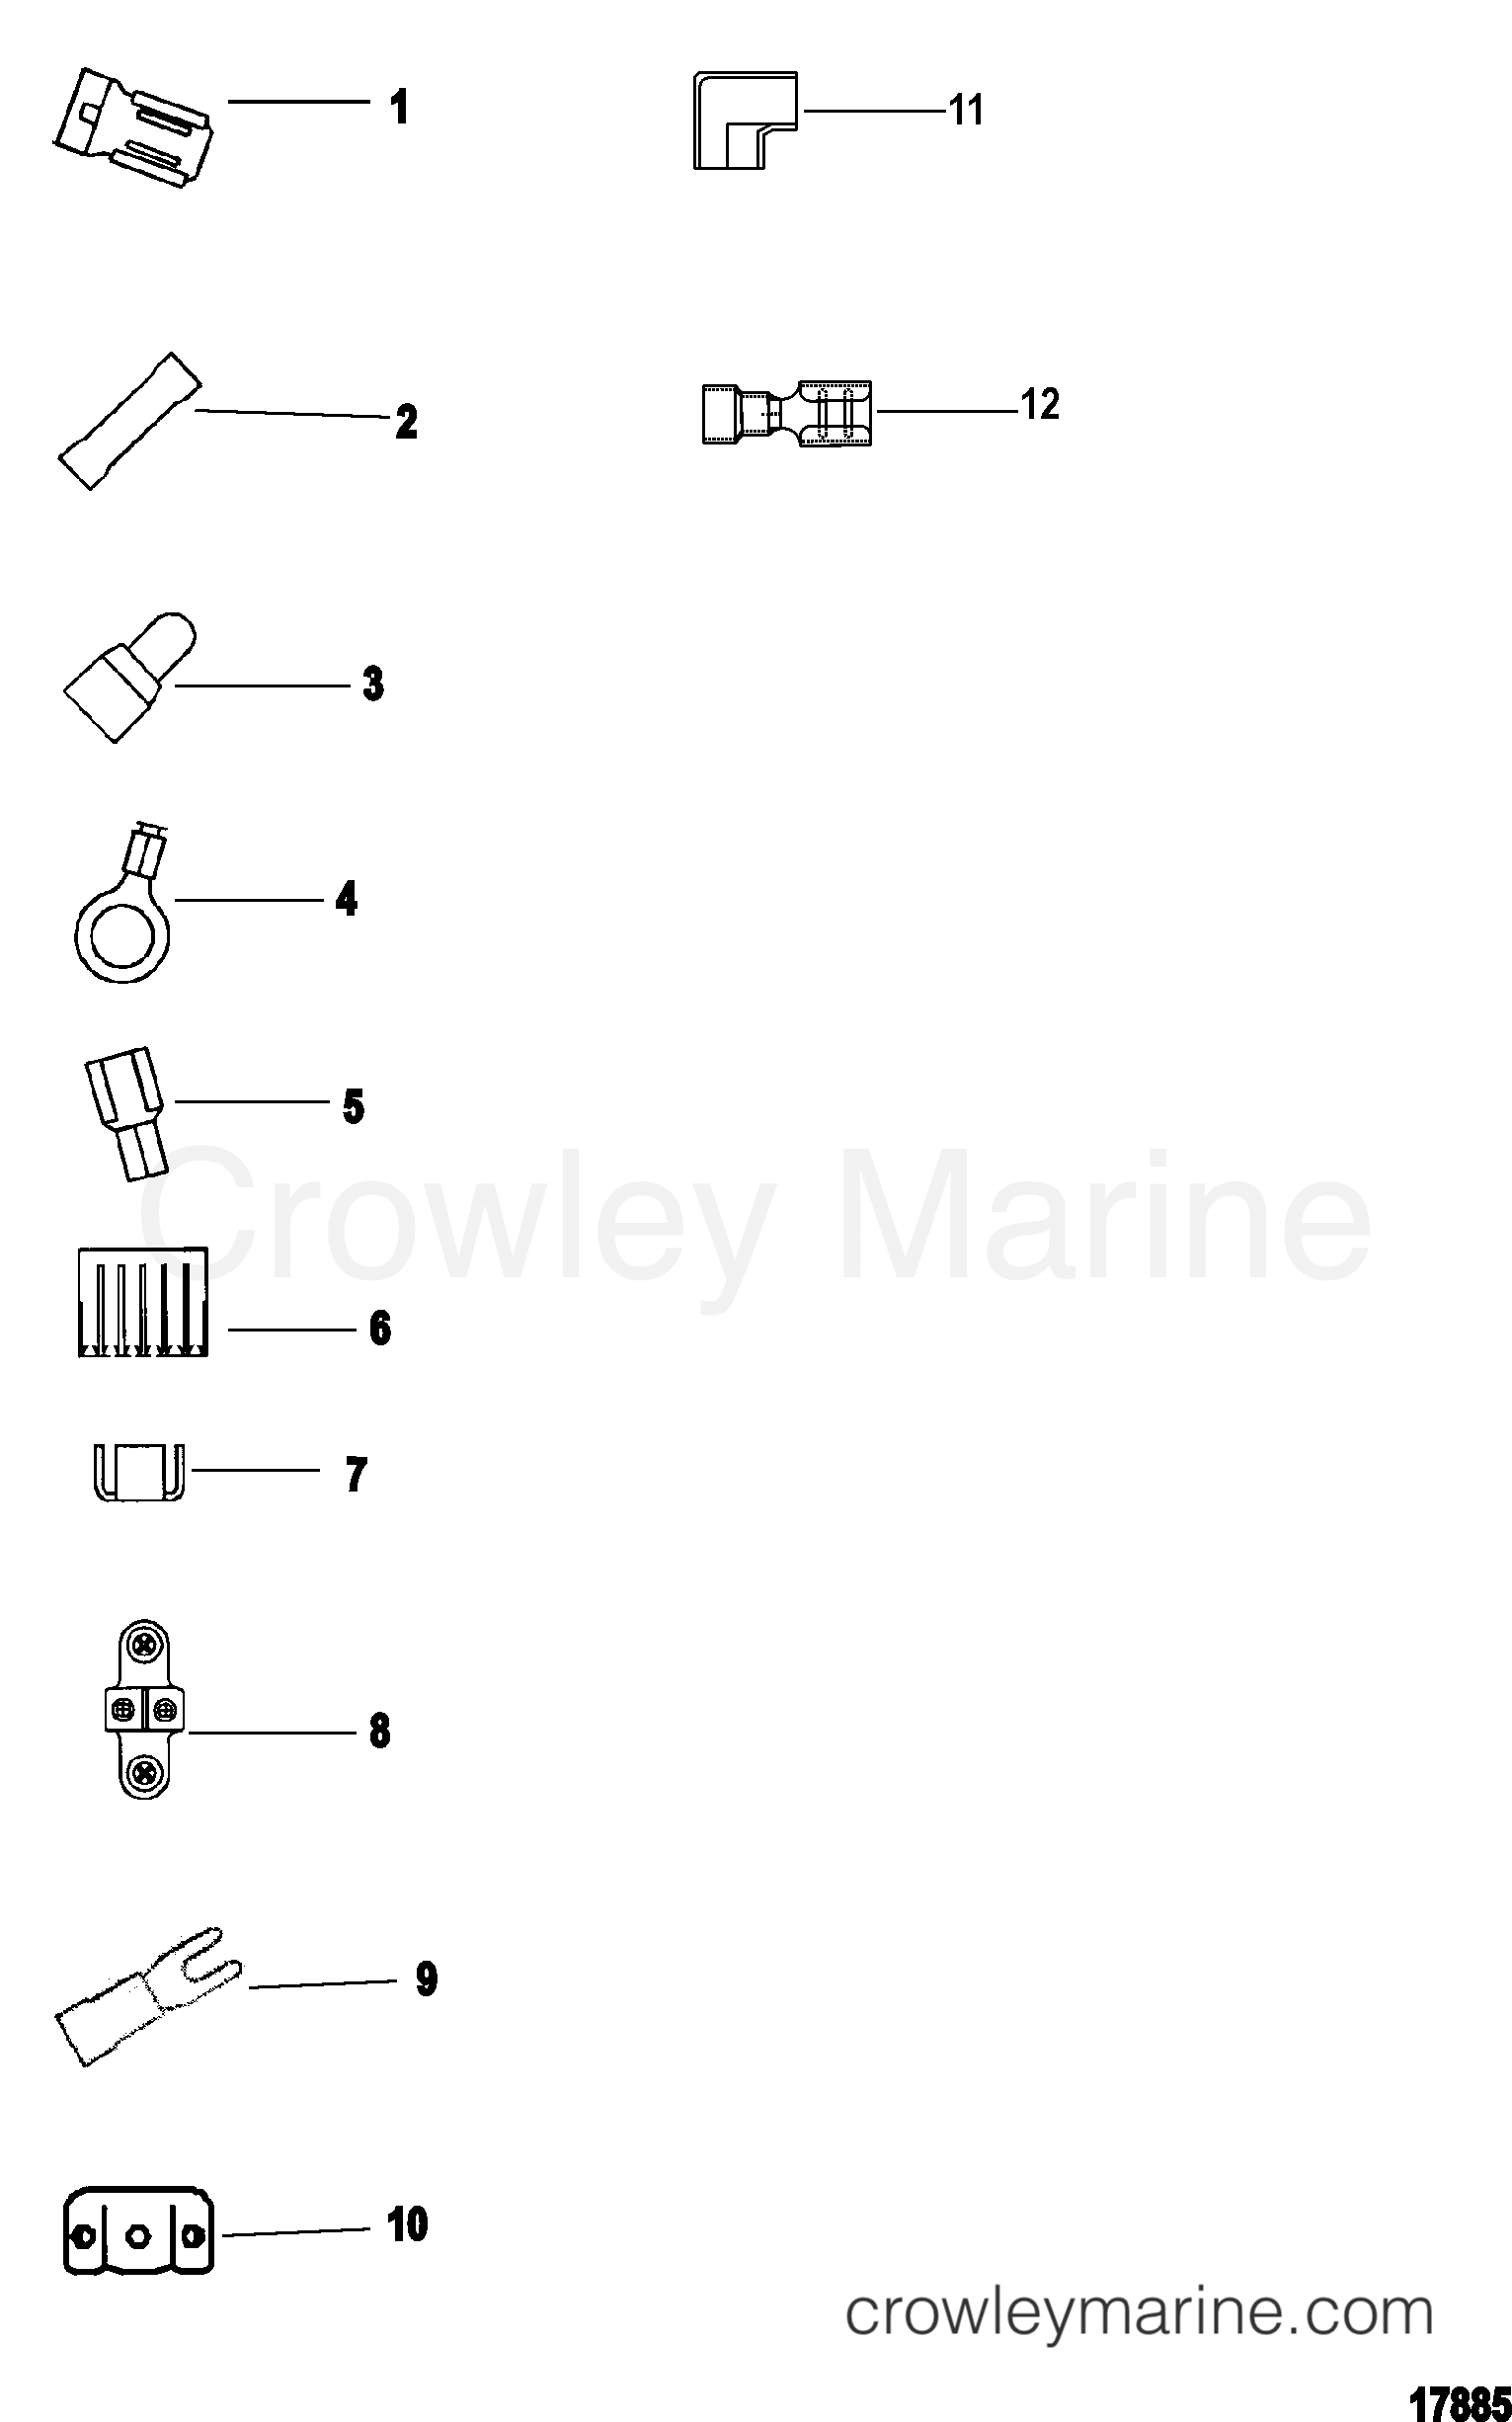 2005 MotorGuide 12V [MOTORGUIDE] - 921310040 - ELECTRICAL CONNECTORS AND TERMINALS section